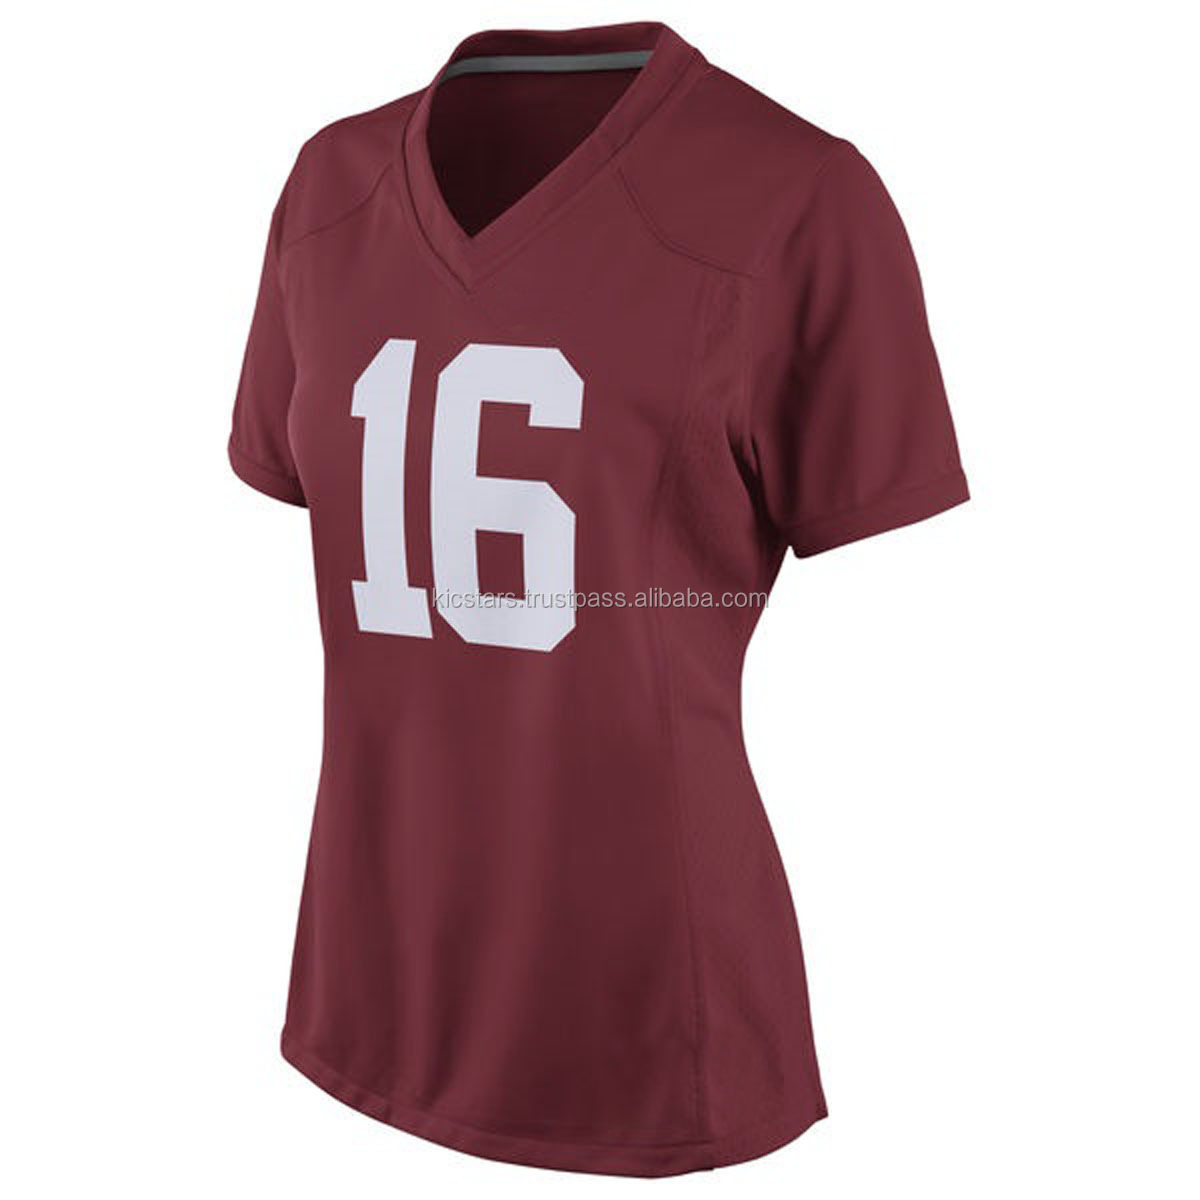 ladies football sublimation jersey